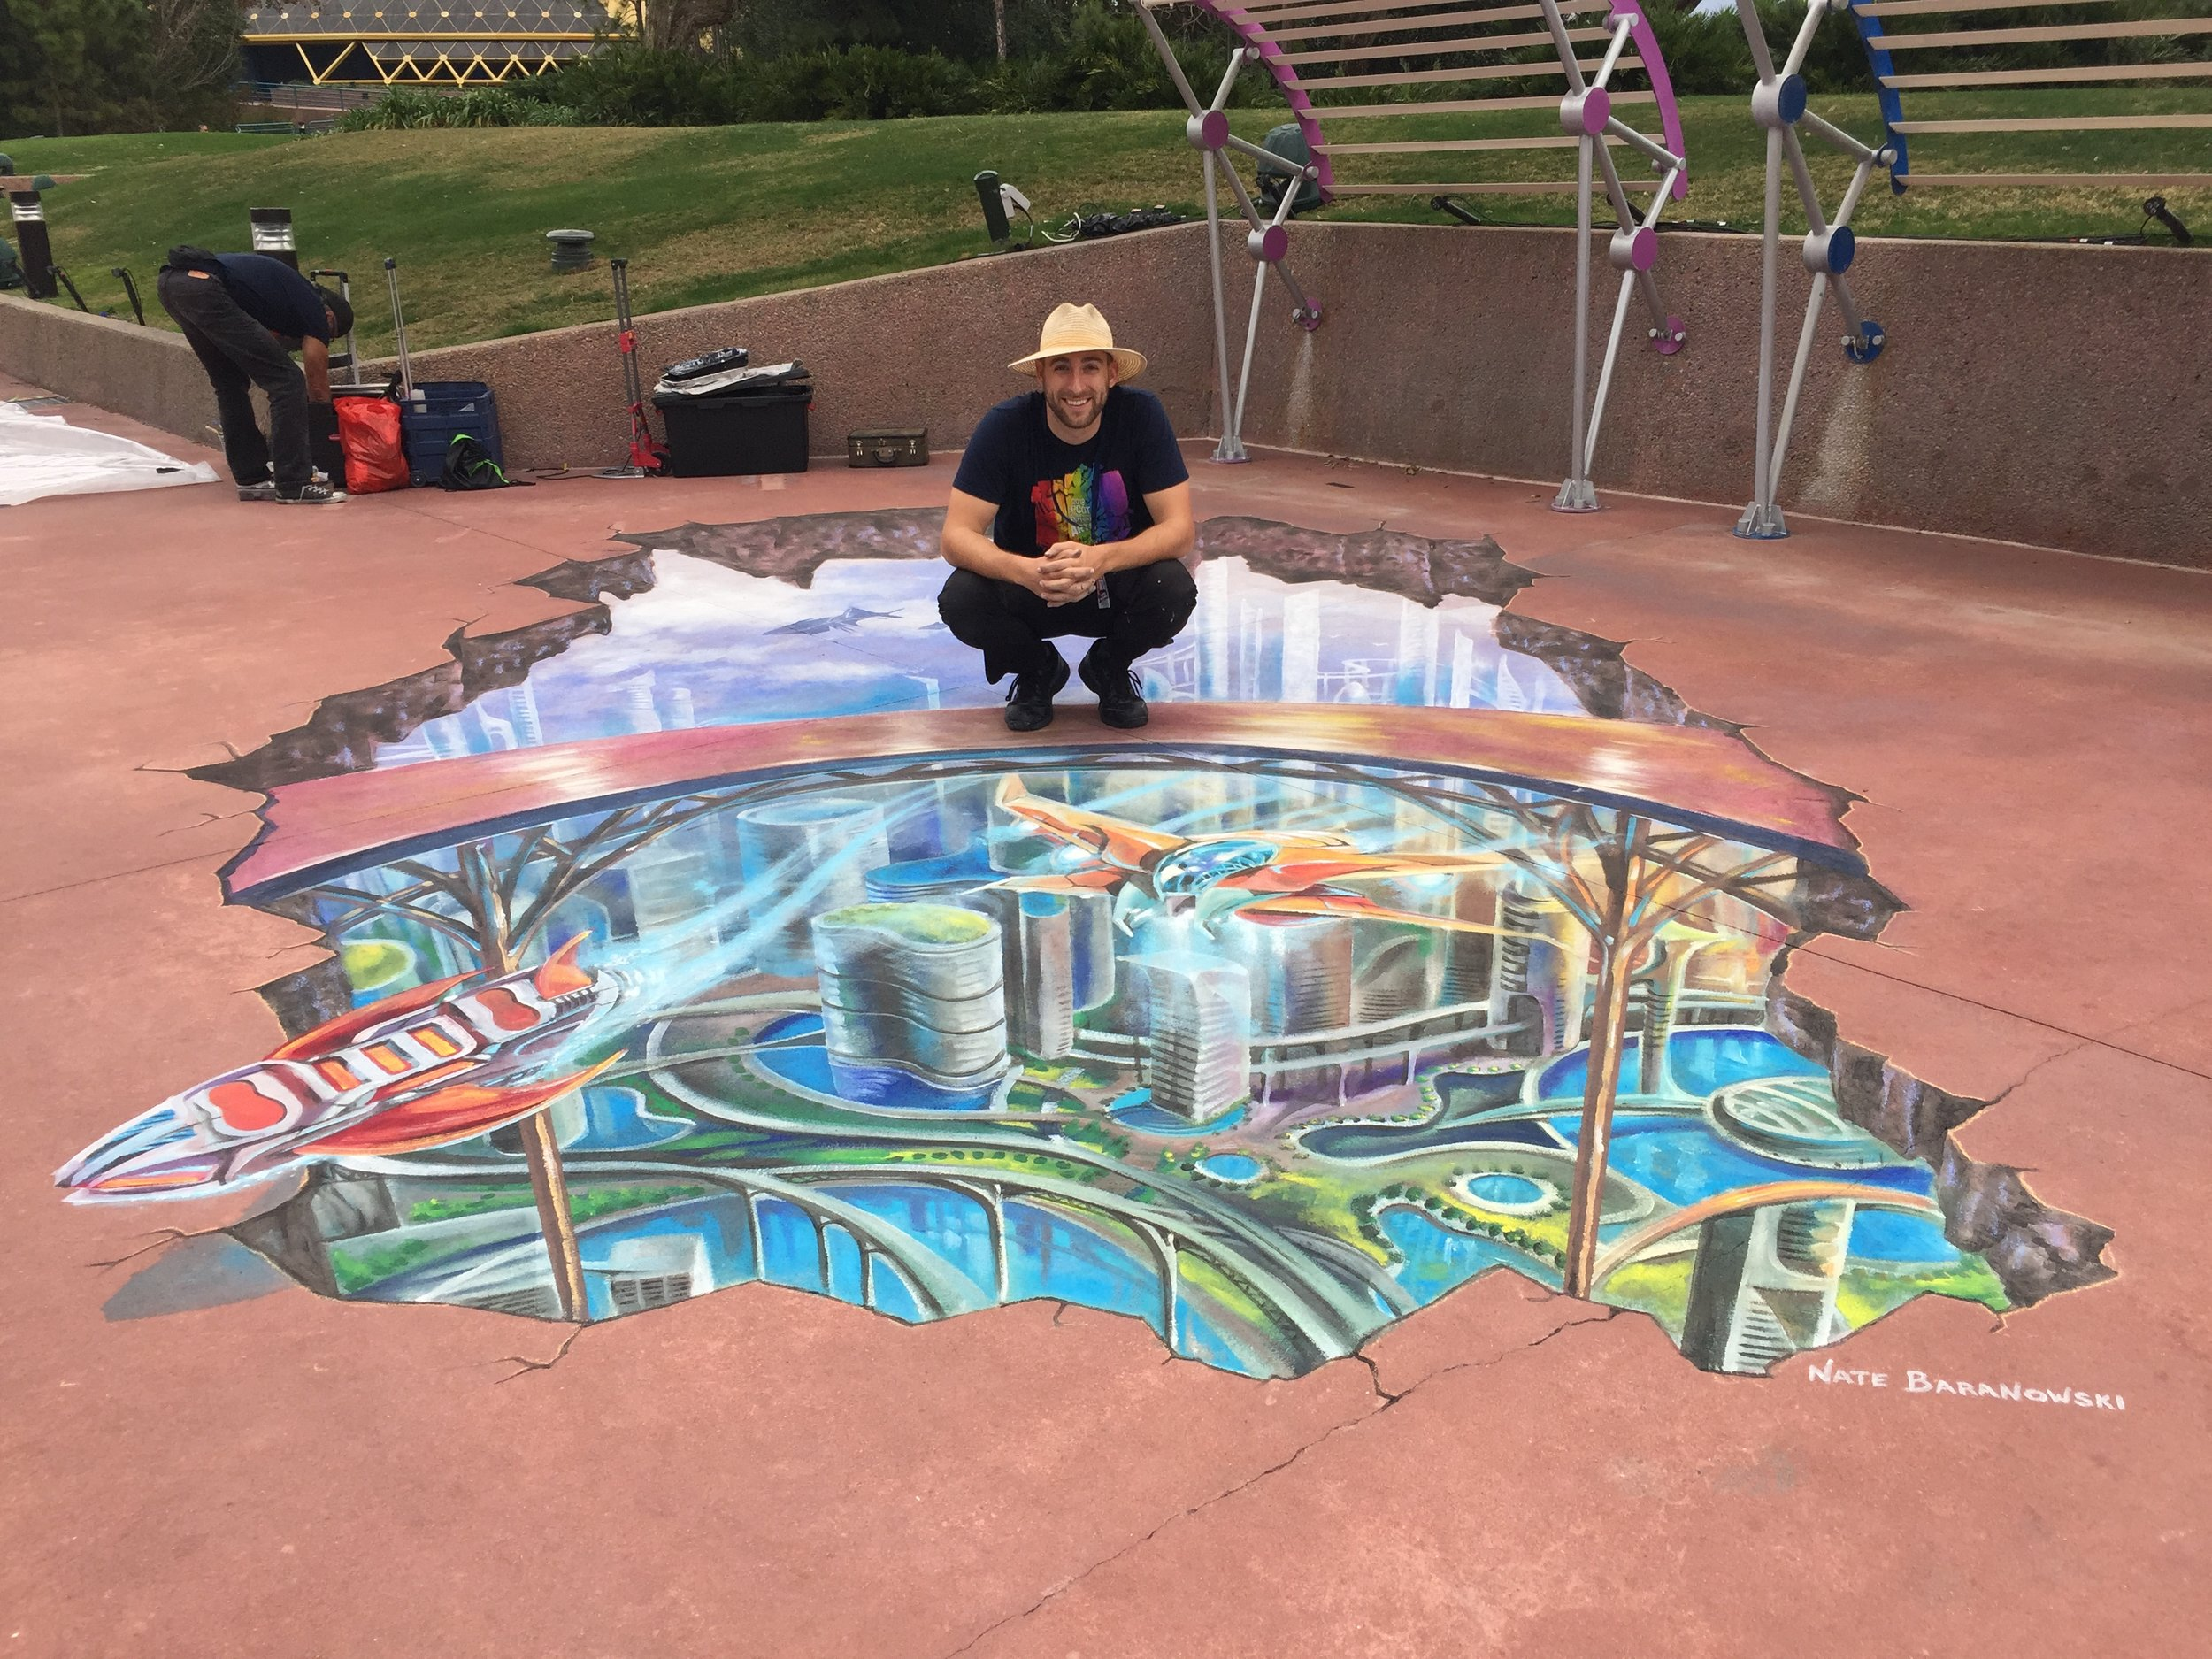 3D Chalk Tomorrowland inspiration for Disney at the 2018 Epcot International Festival of the Arts